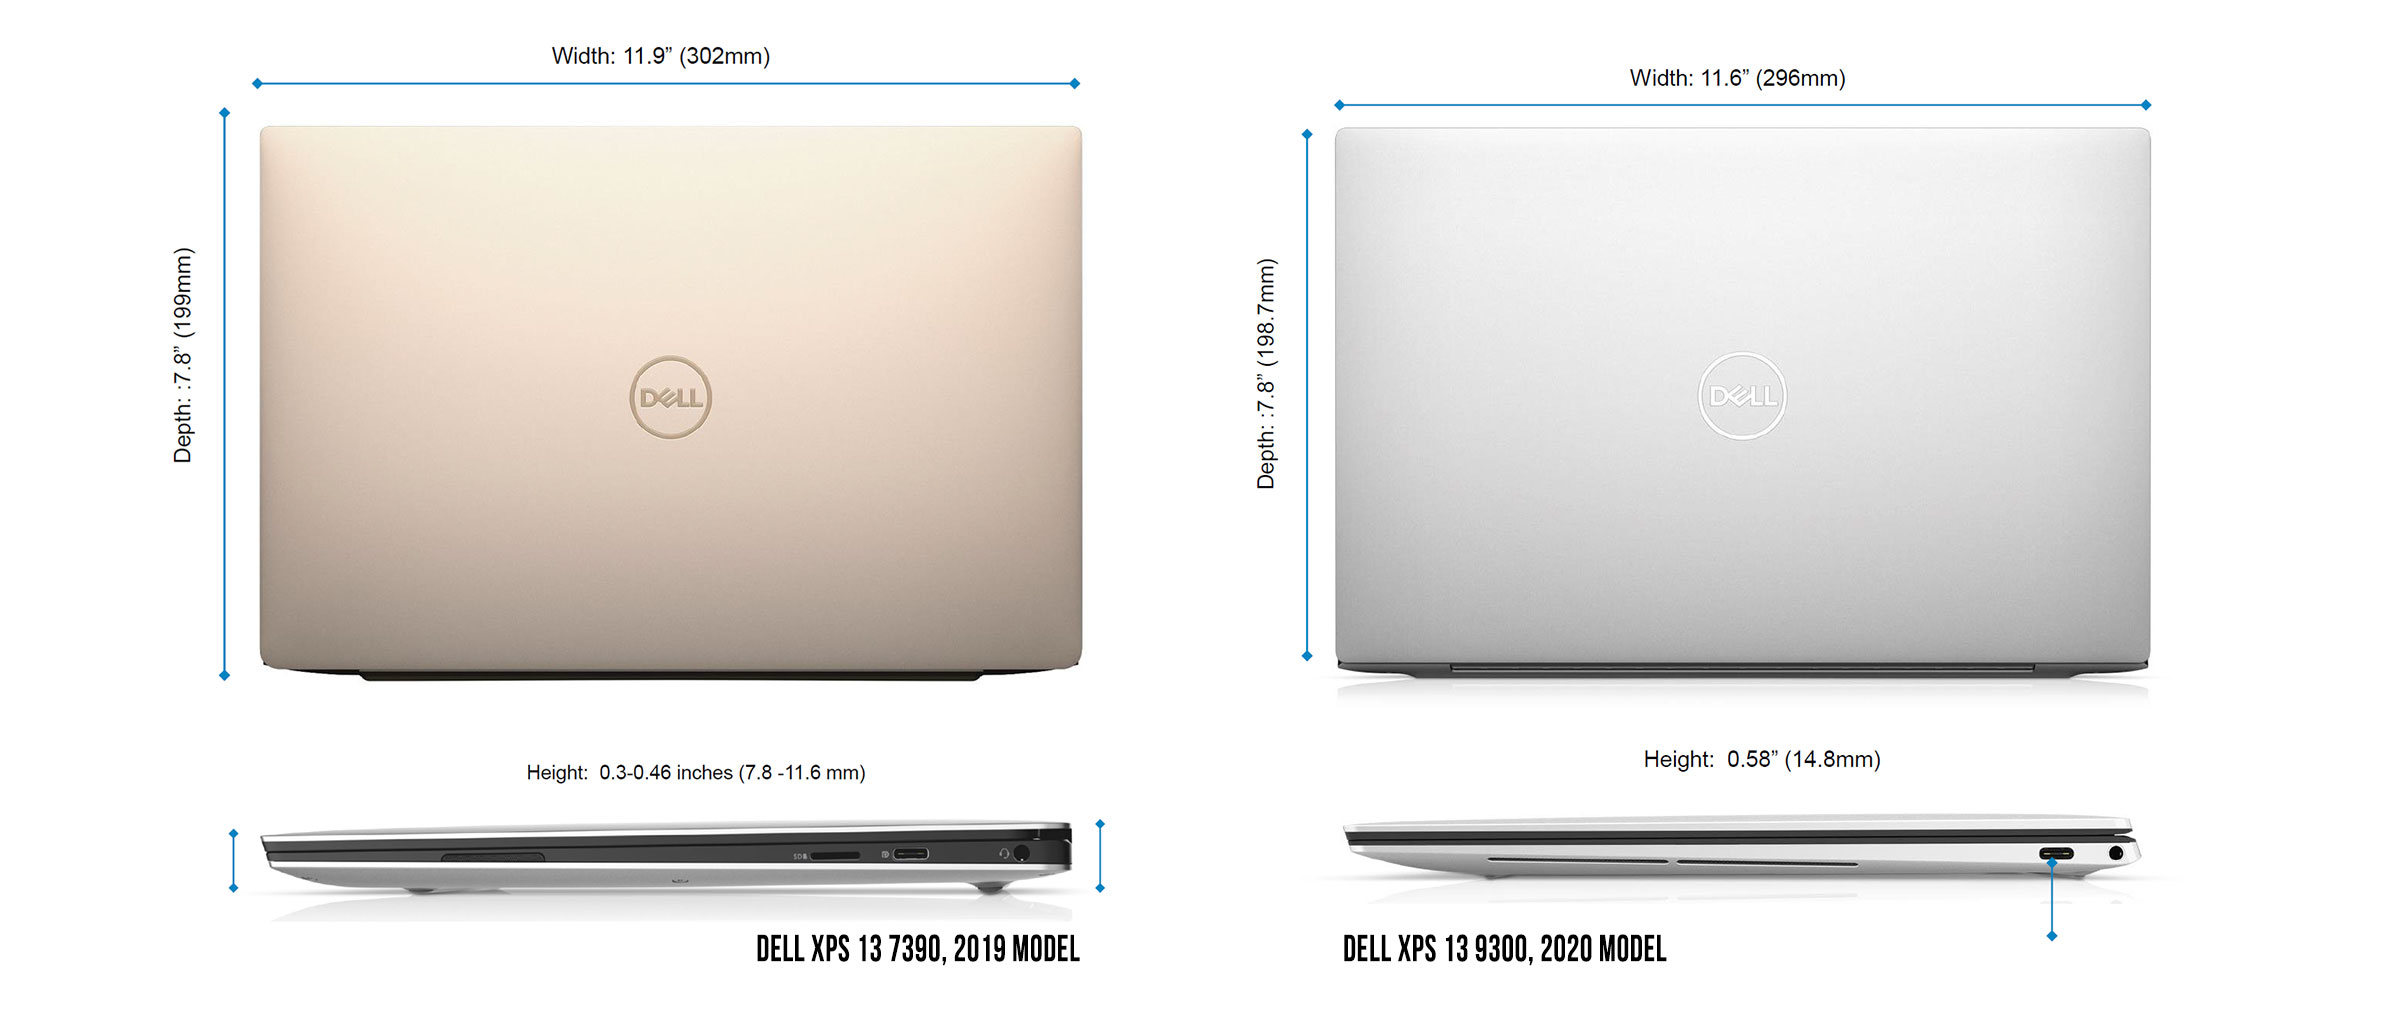 Dell XPS 13 9300 size